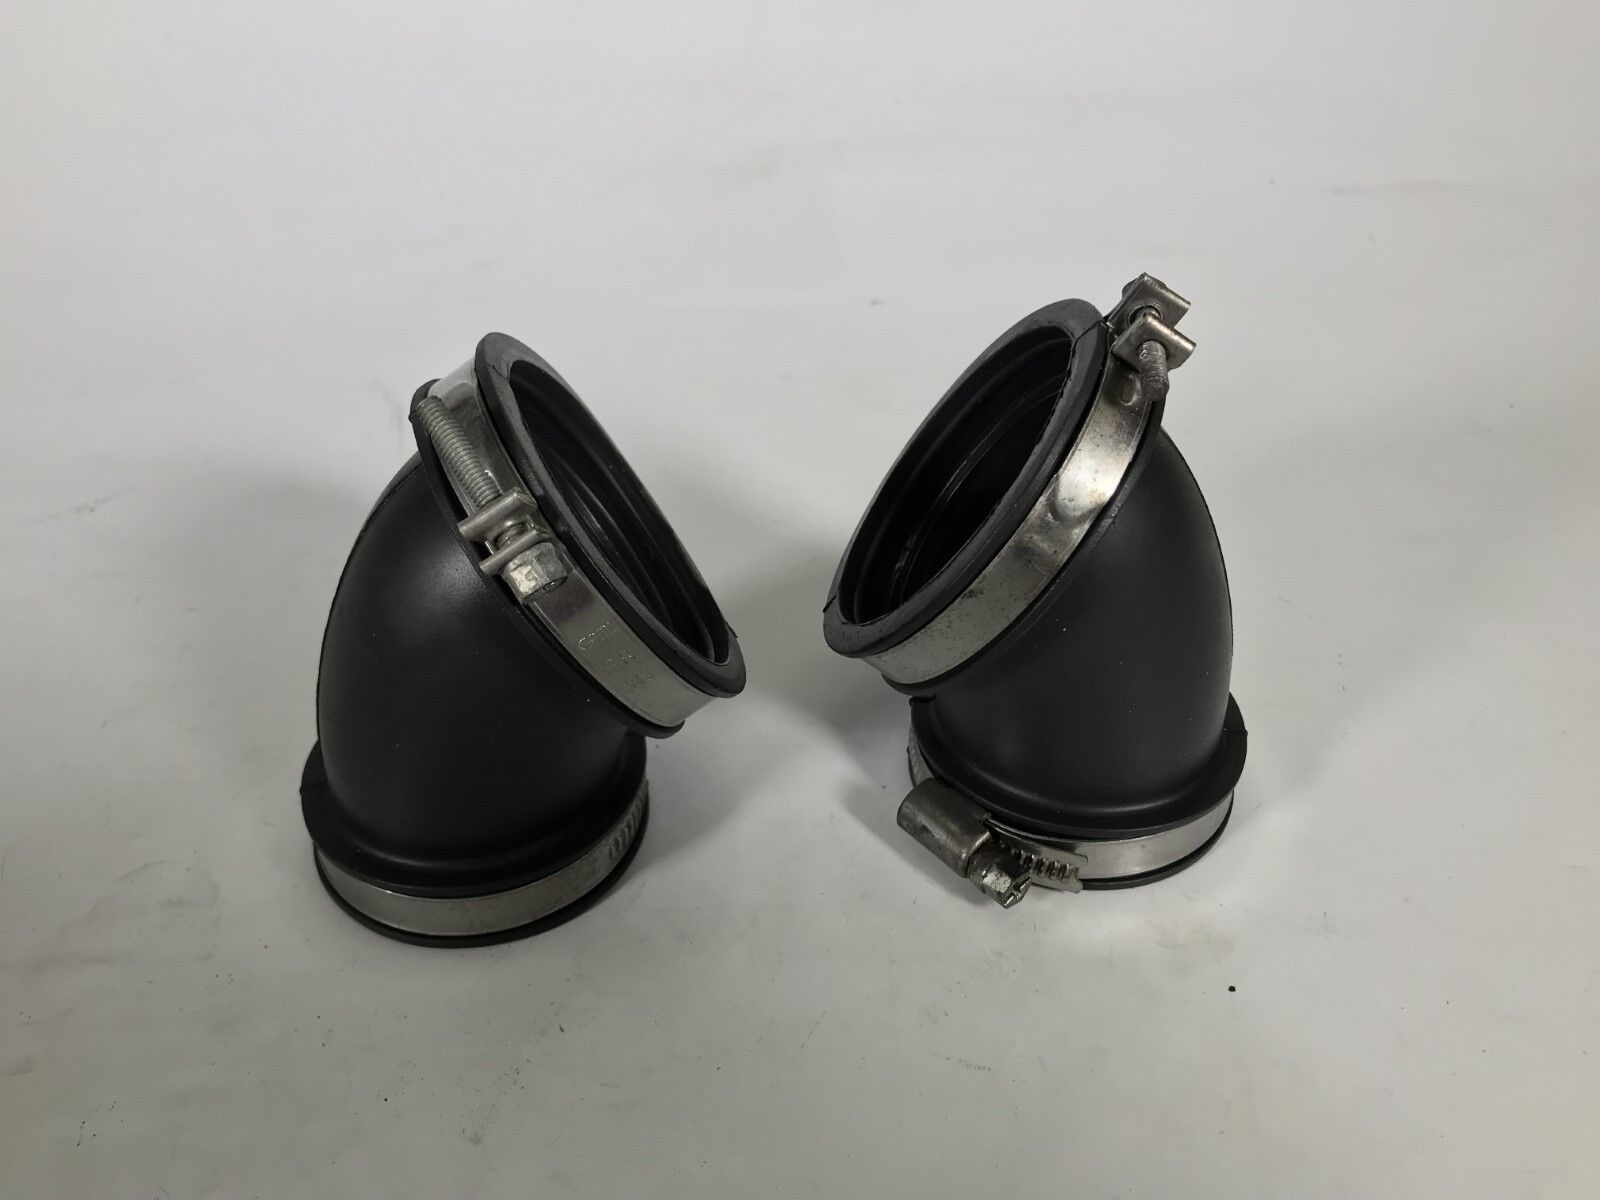 1994-on Ducati 916 748 996 998 air intake PAIR of velocity stacks 80210151A NEW!